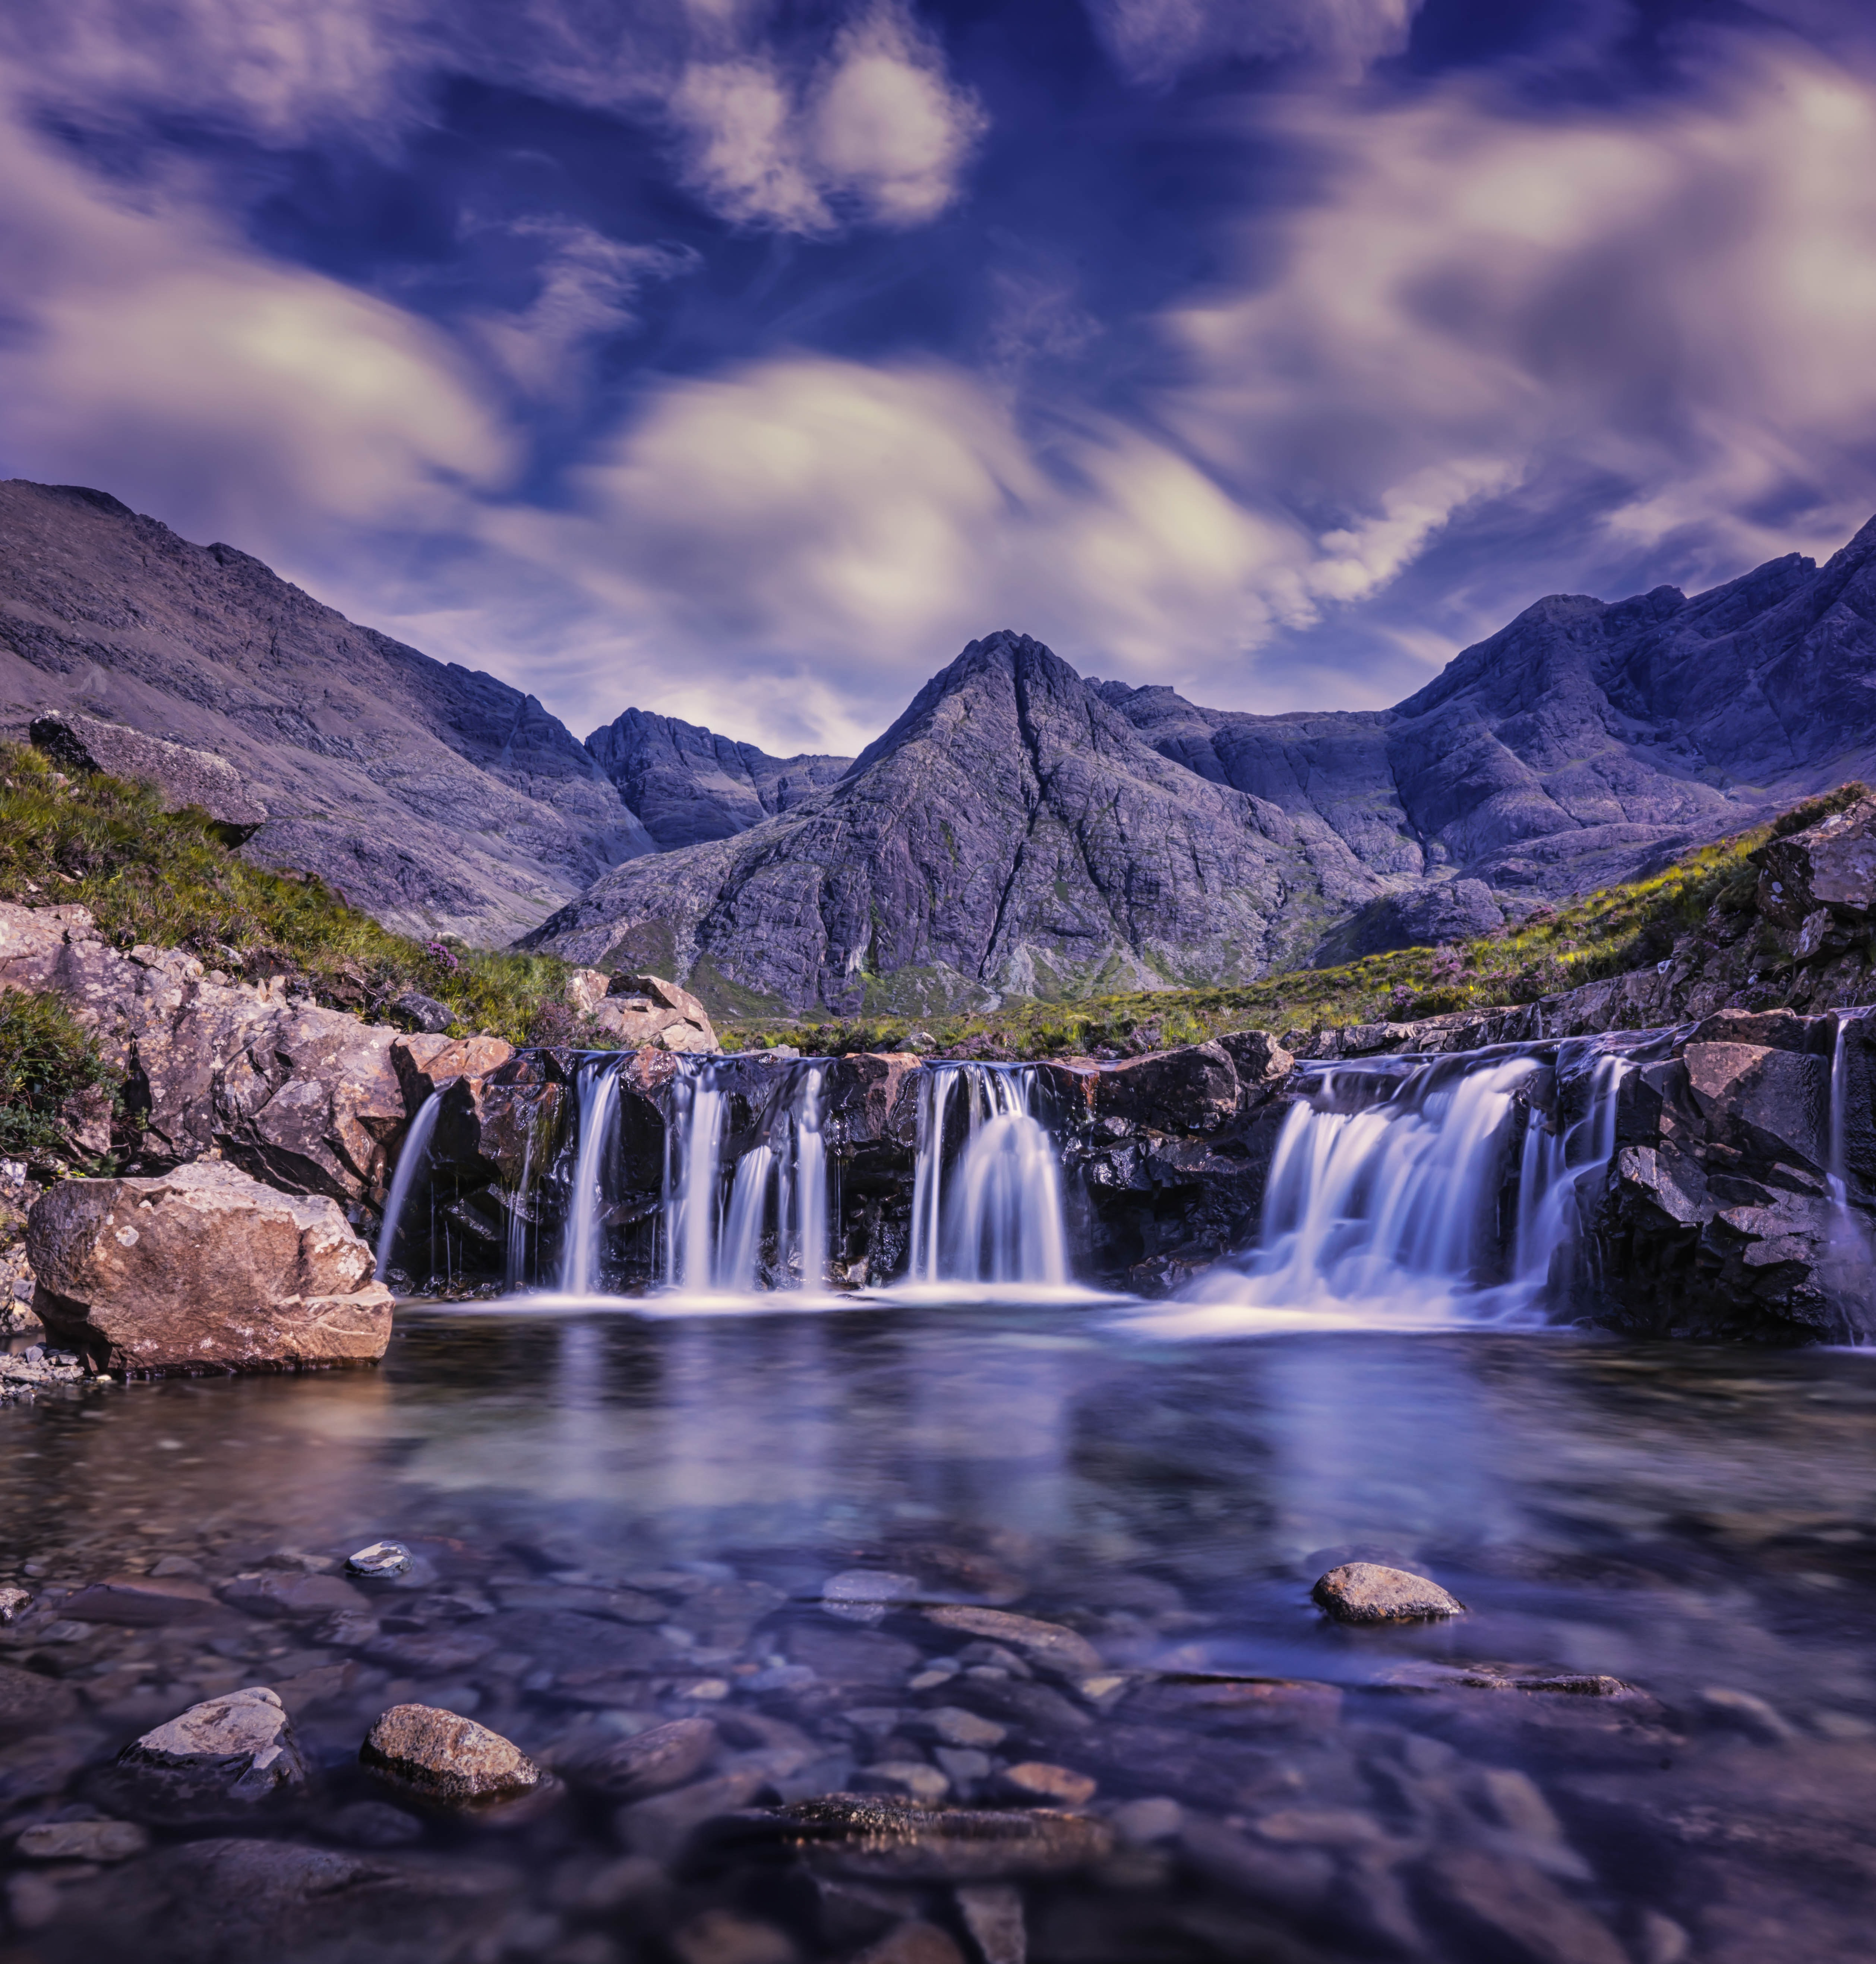 waterfalls under cloudy sky